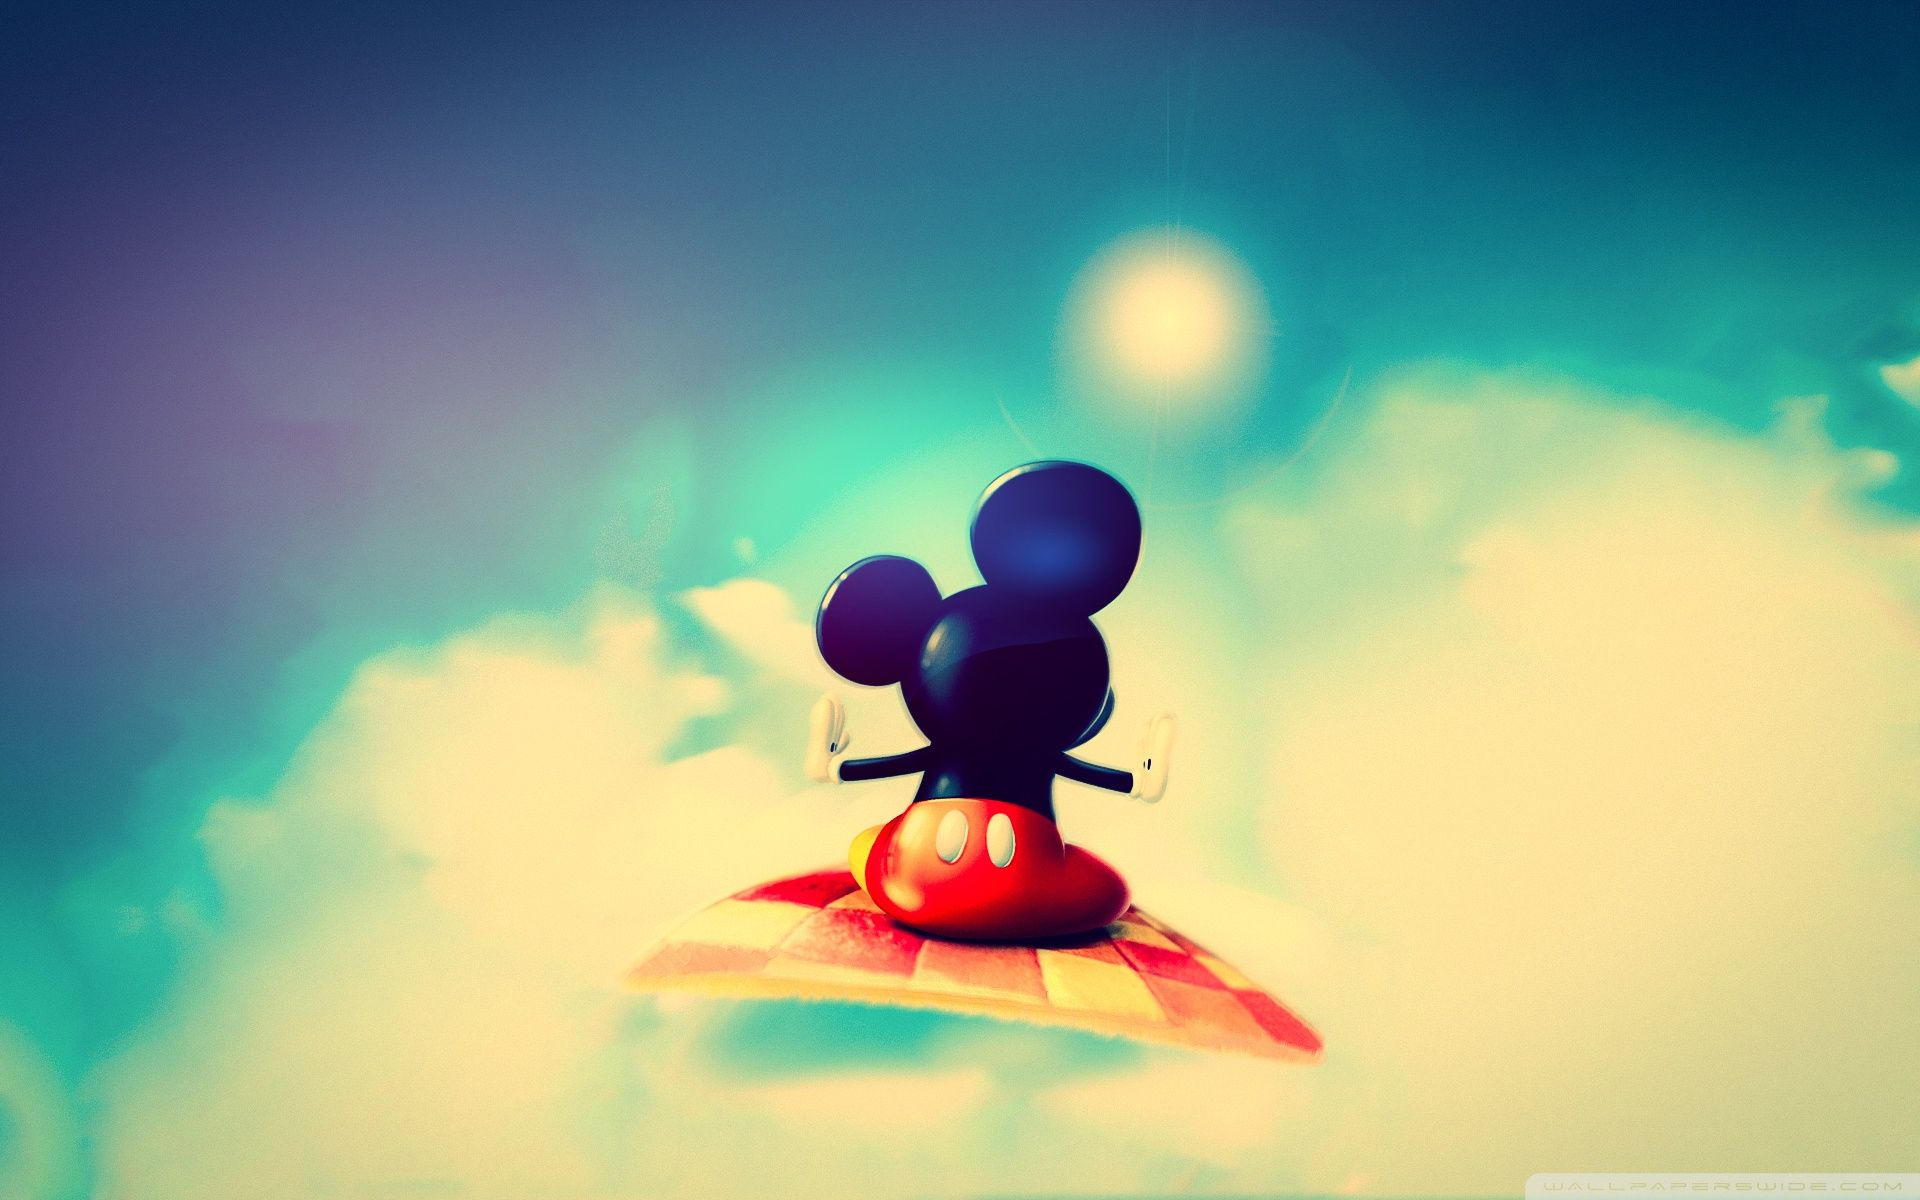 Micky Mouse Cute Disney Wallpaper Disney Background Background Hd Wallpaper